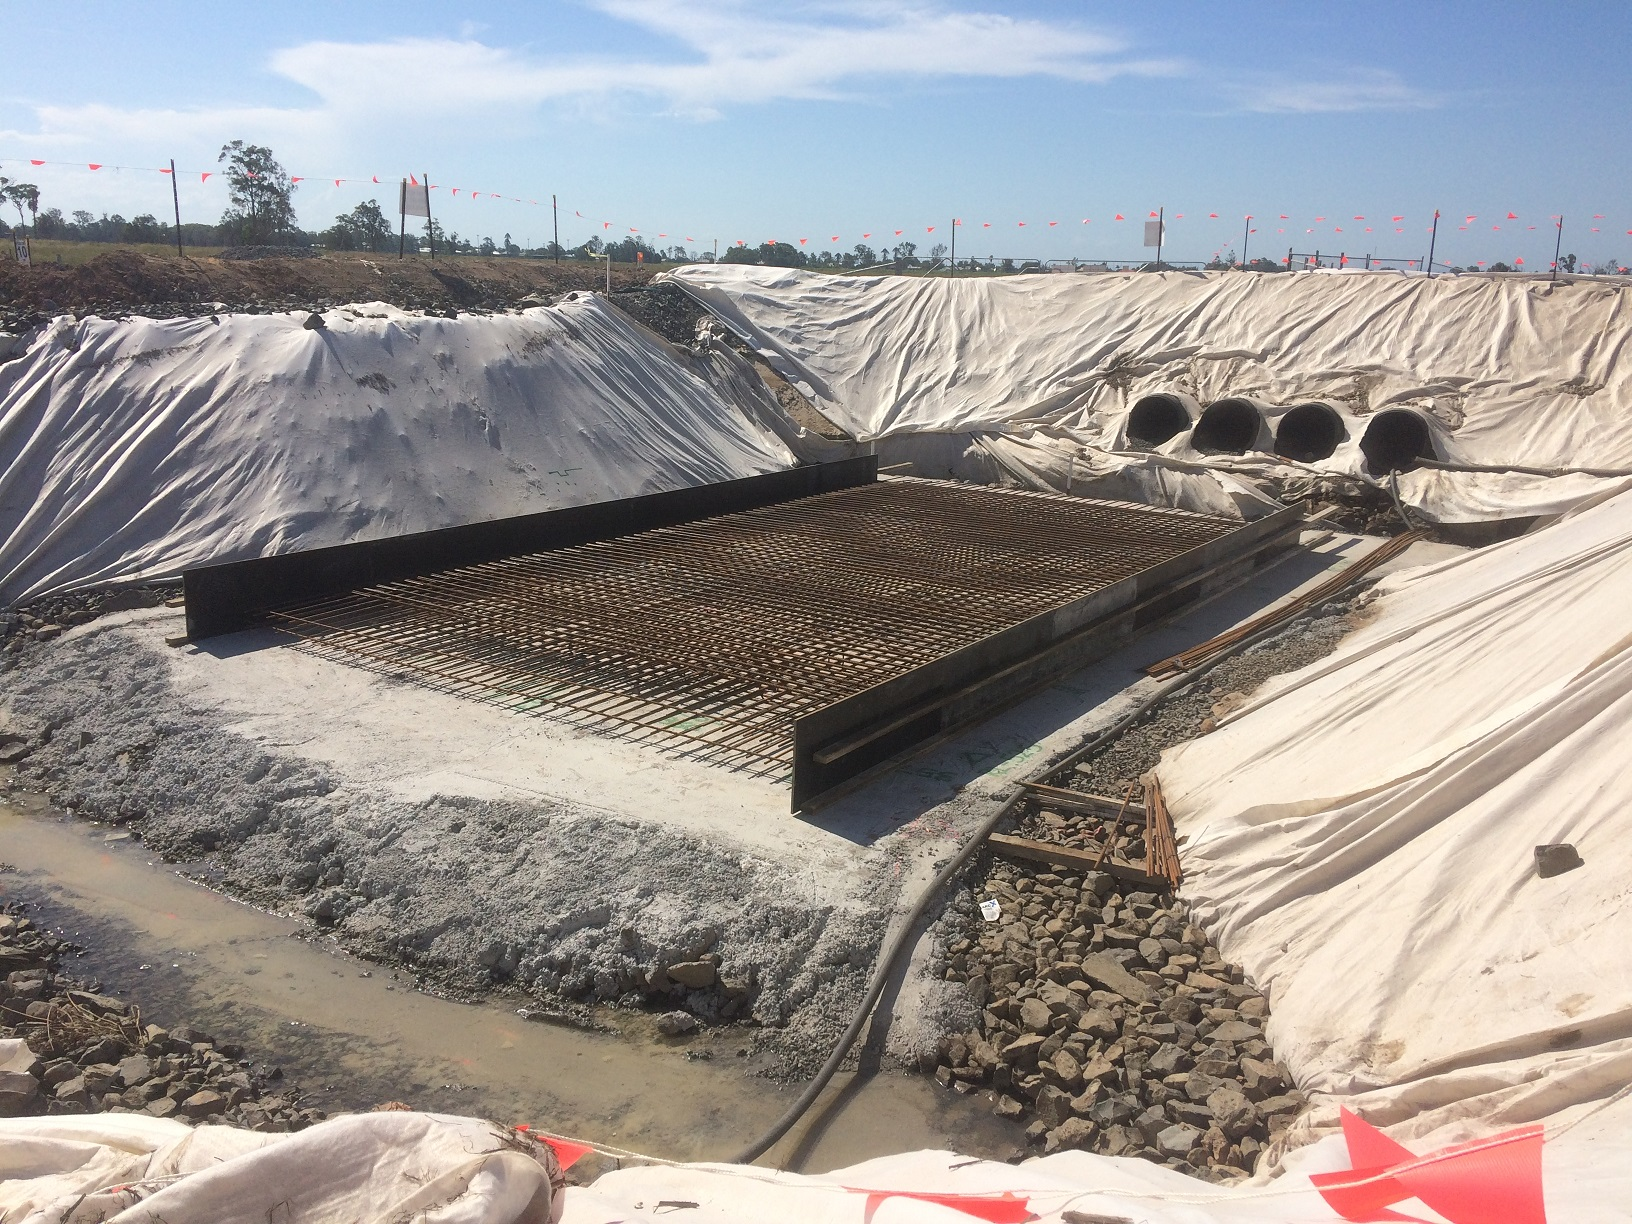 Large culverts were constructed in environmentally sensitive areas